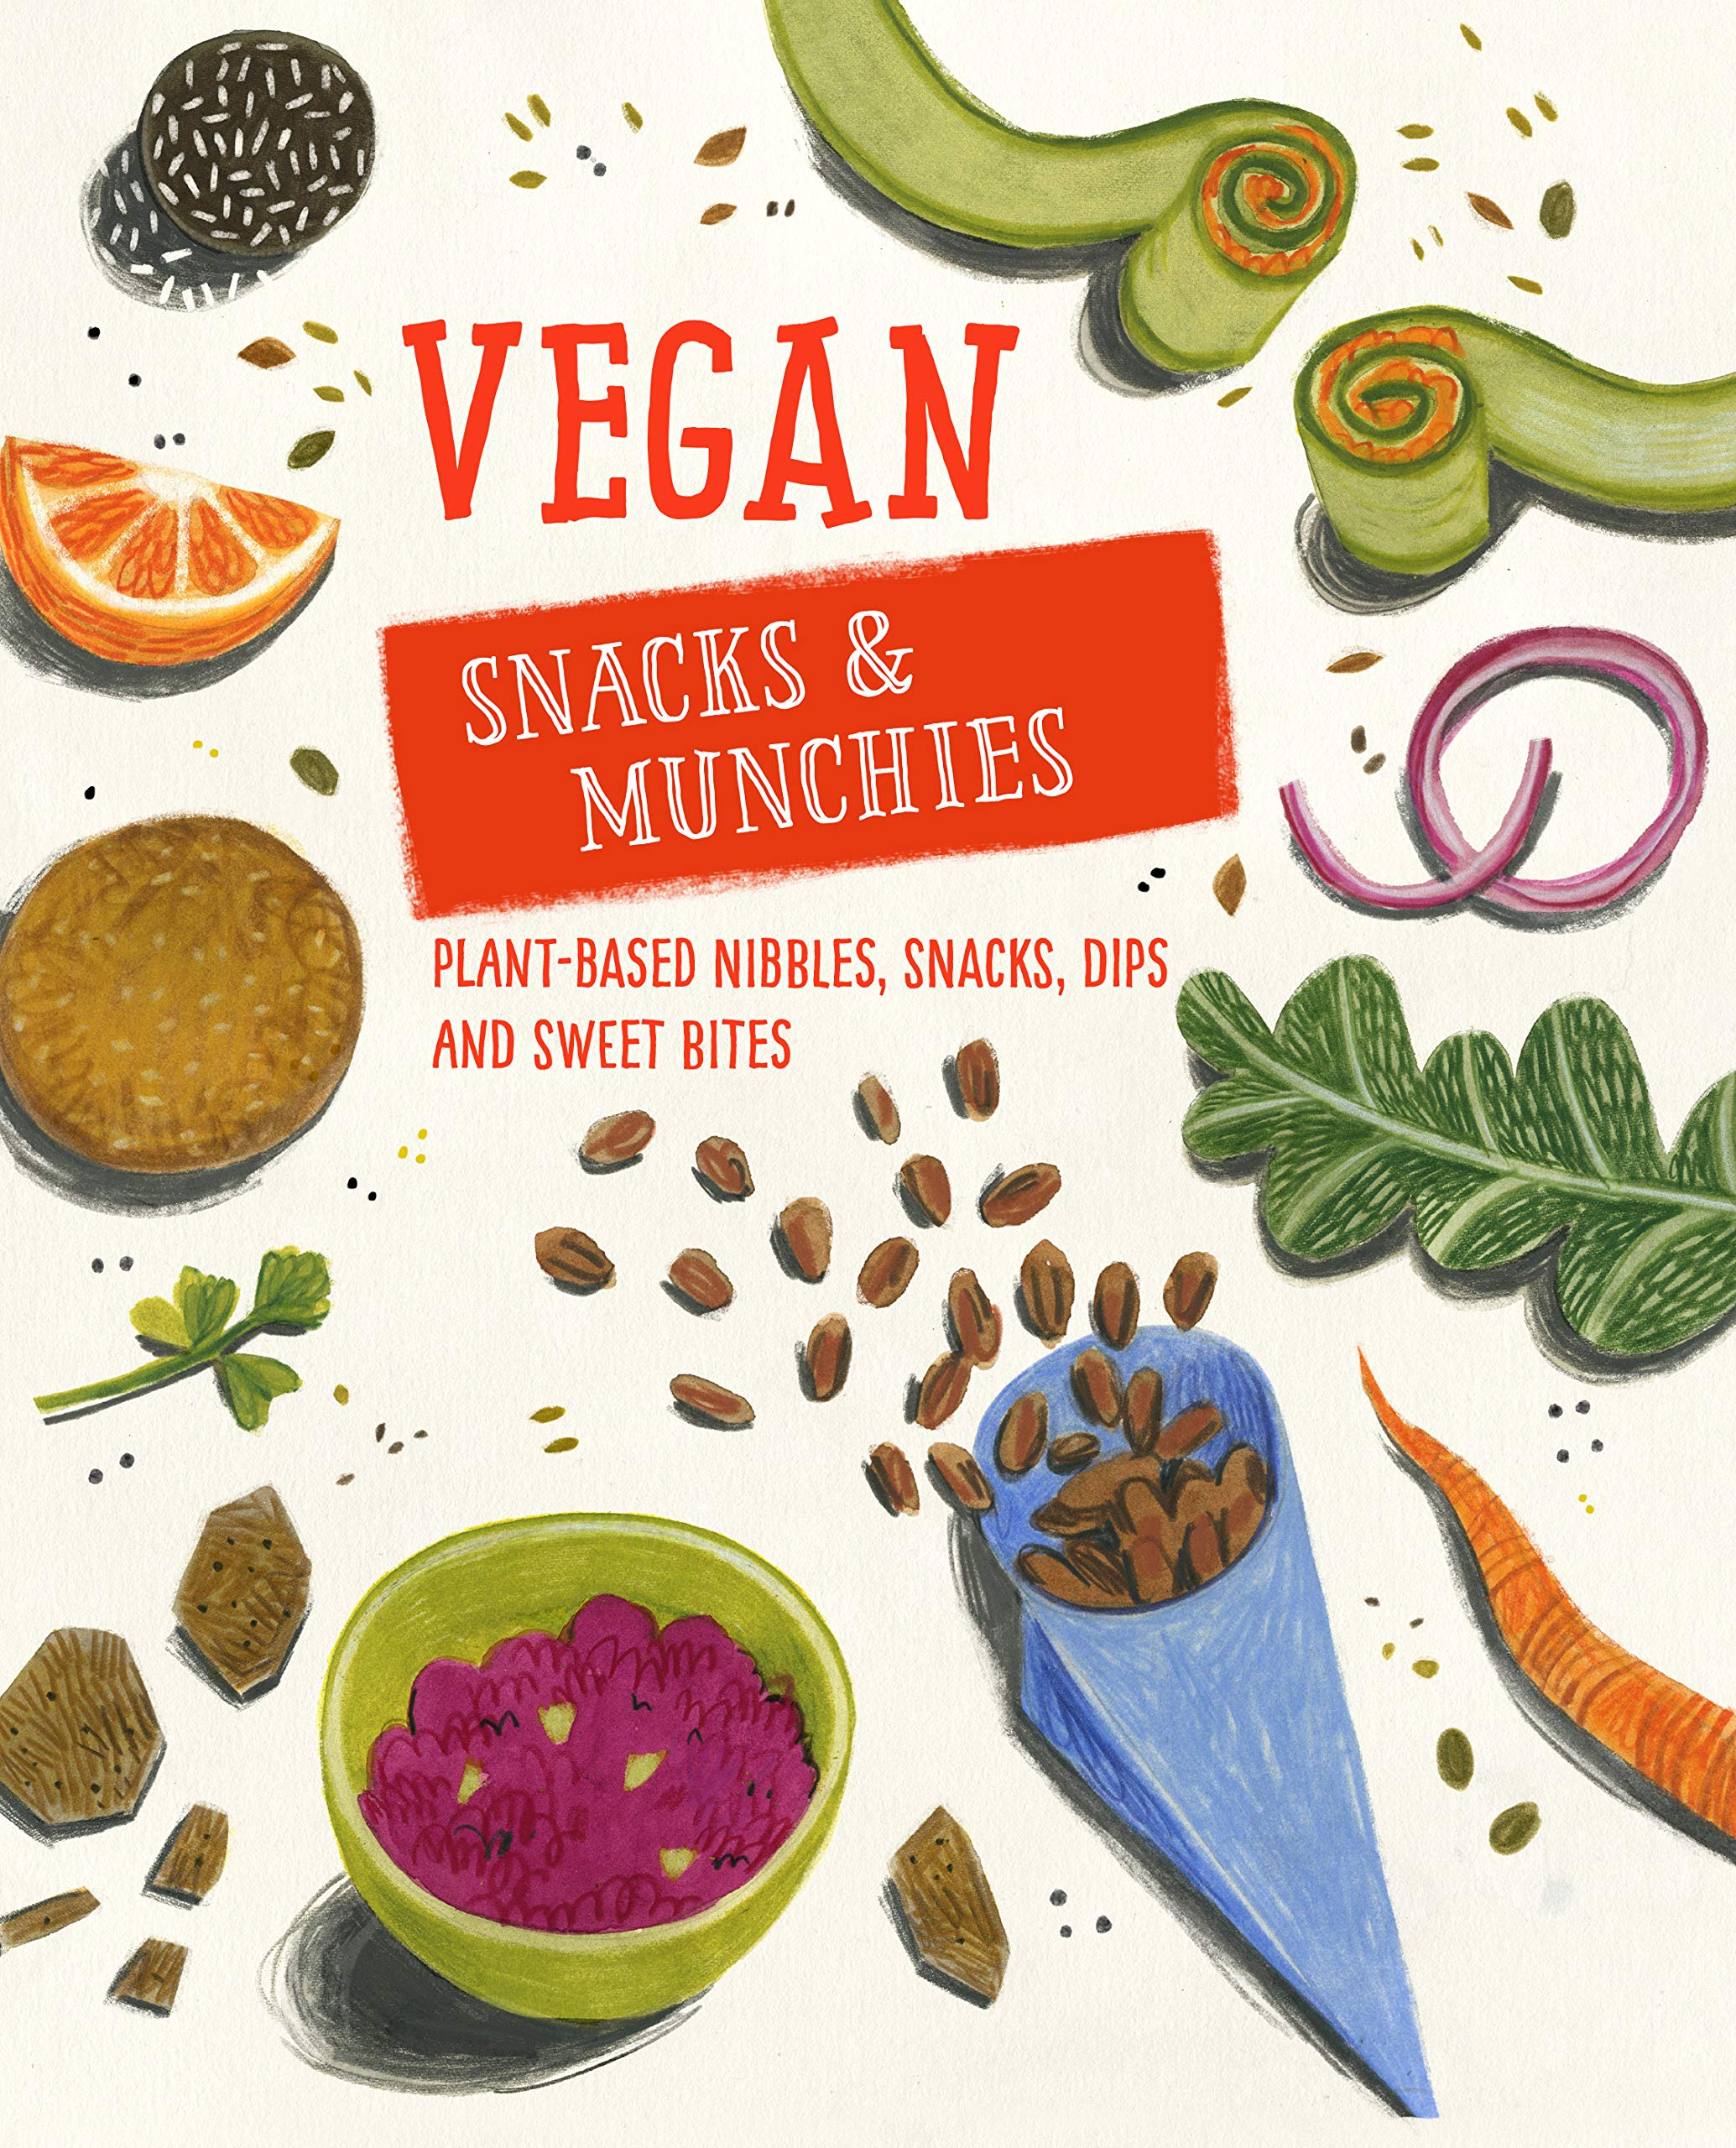 Vegan Snacks Munchies Plant Based Nibbles Snacks Dips And Sweet Bites Ryland Peters Small 9781788790321 Amazon Com Books,Streusel Topping For Muffins